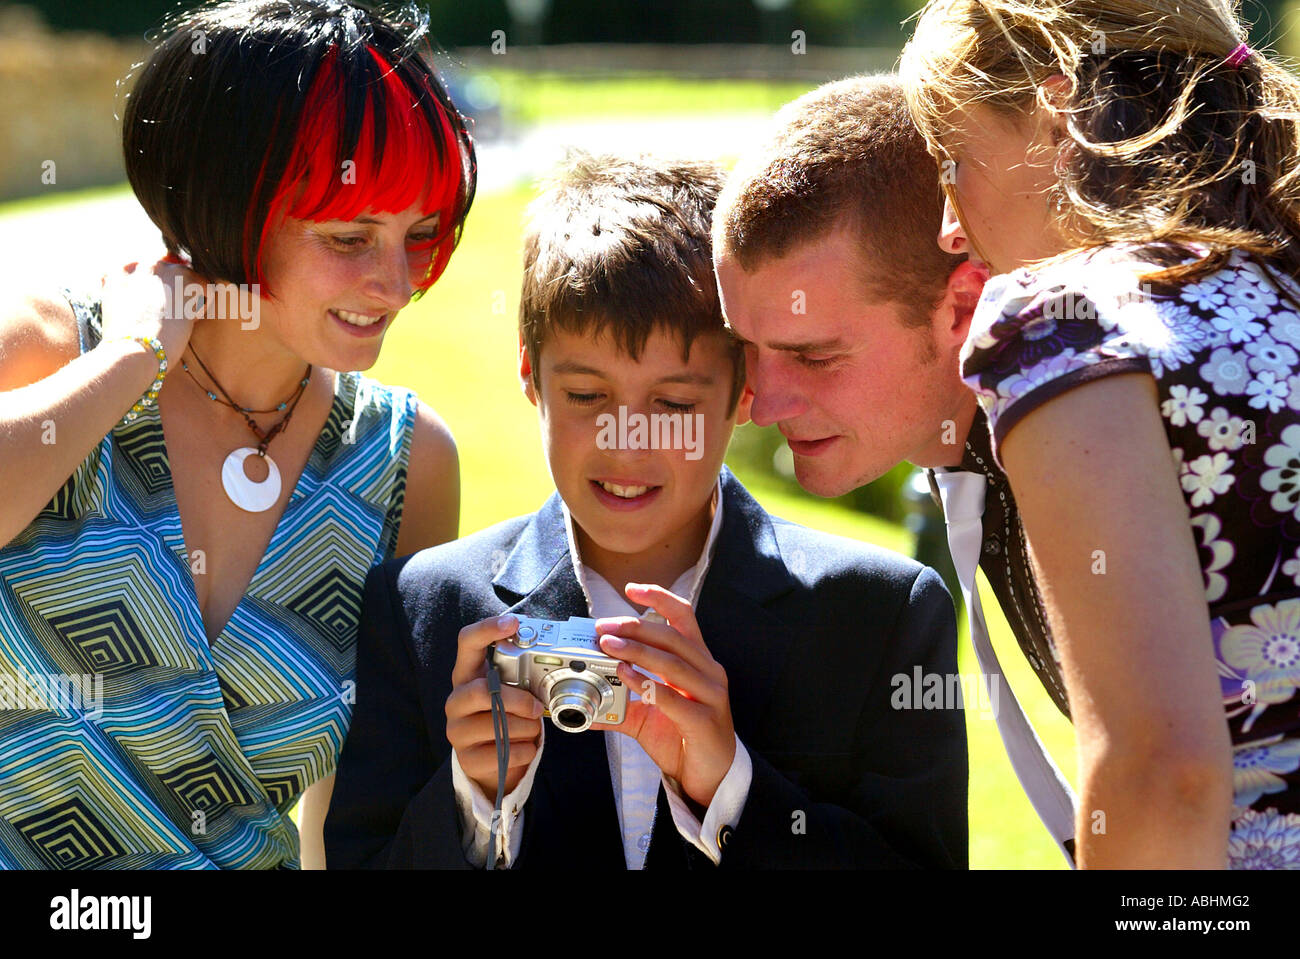 Viewing a digital image on the back of a camera - Stock Image